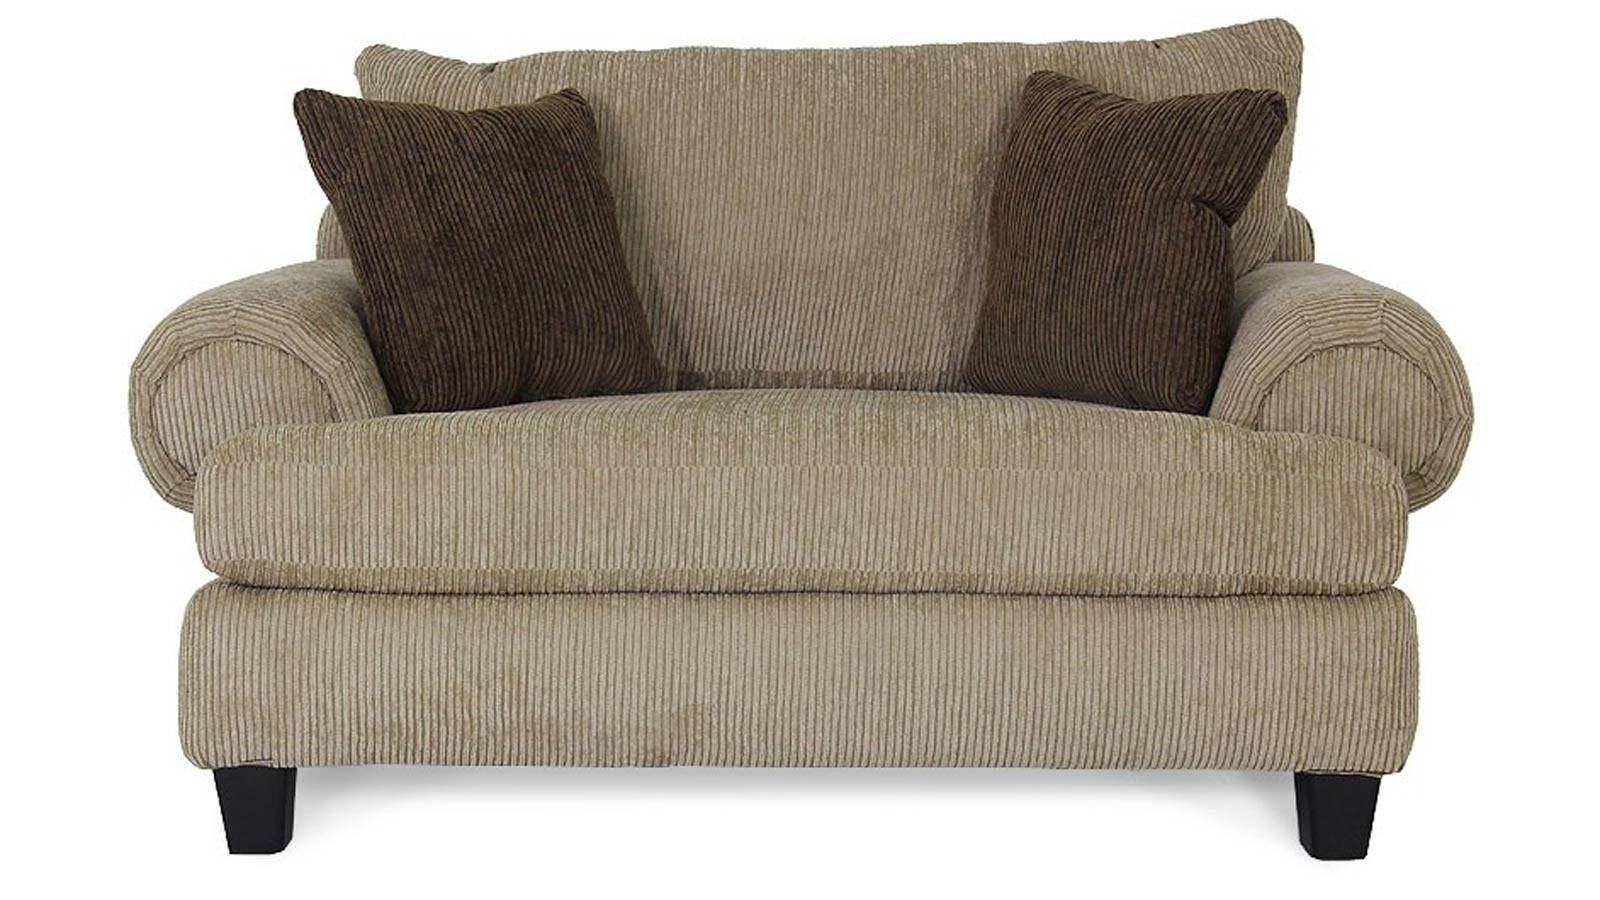 20 Ideas Of Alan White Loveseats | Sofa Ideas intended for Alan White Couches (Image 12 of 15)